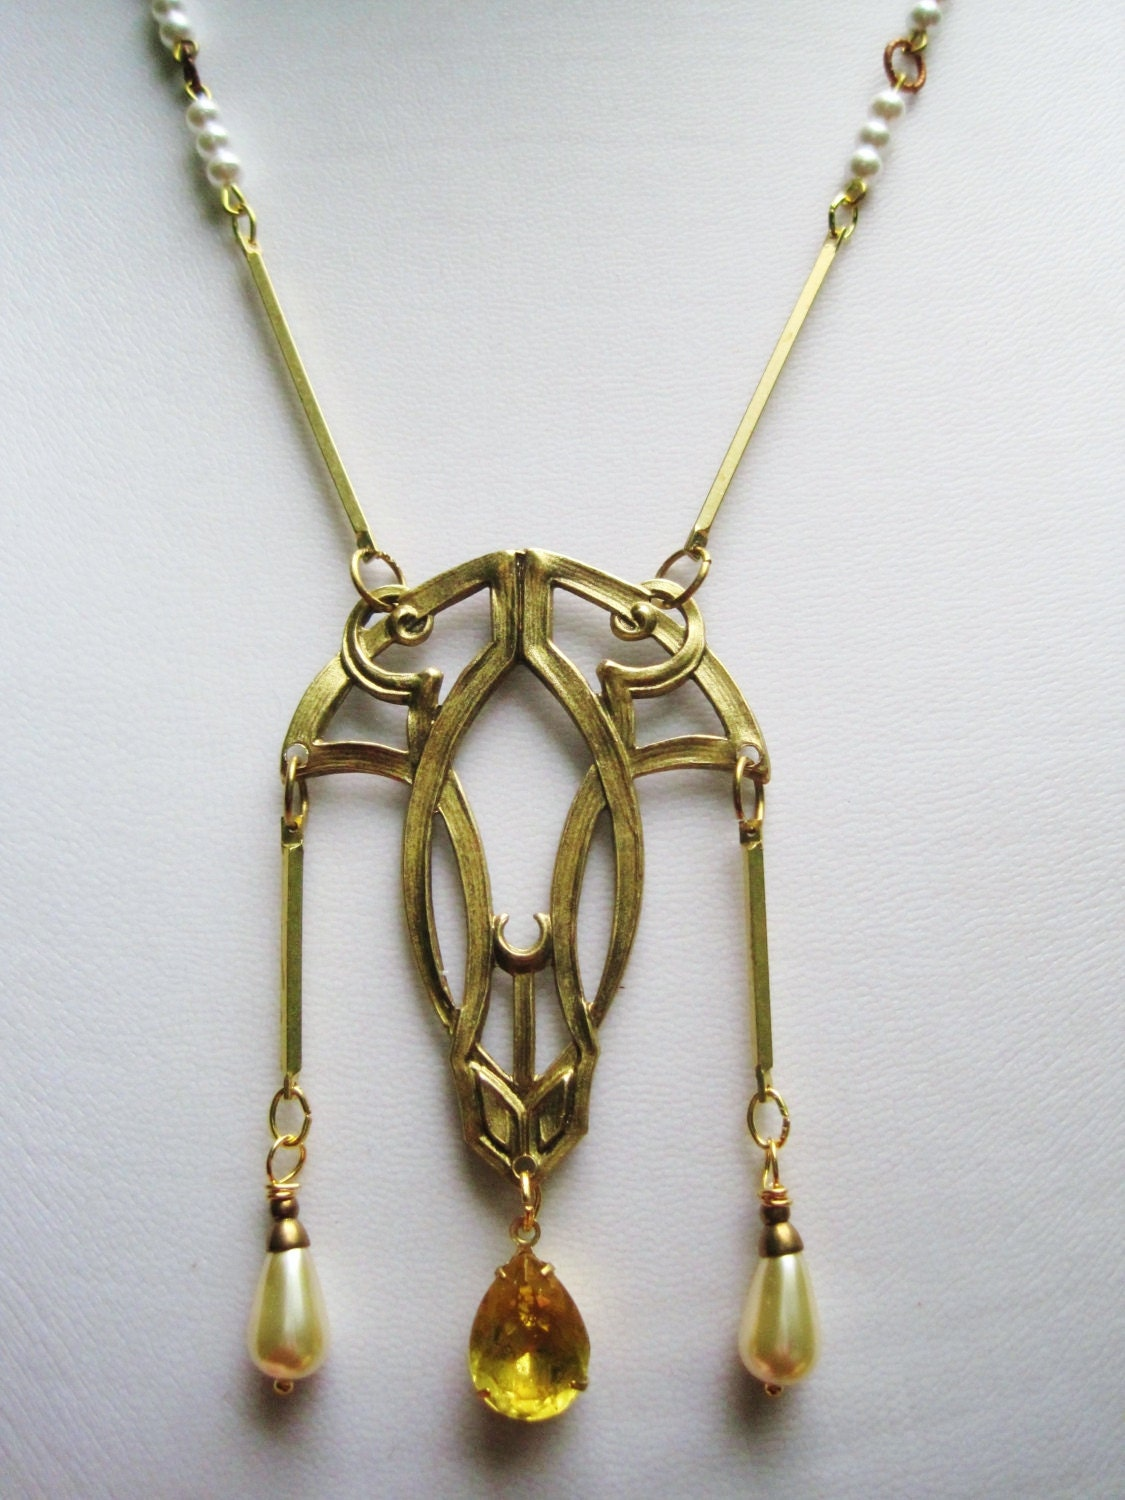 Art Deco Necklace 1920s Vintage Style Art Nouveau Statement